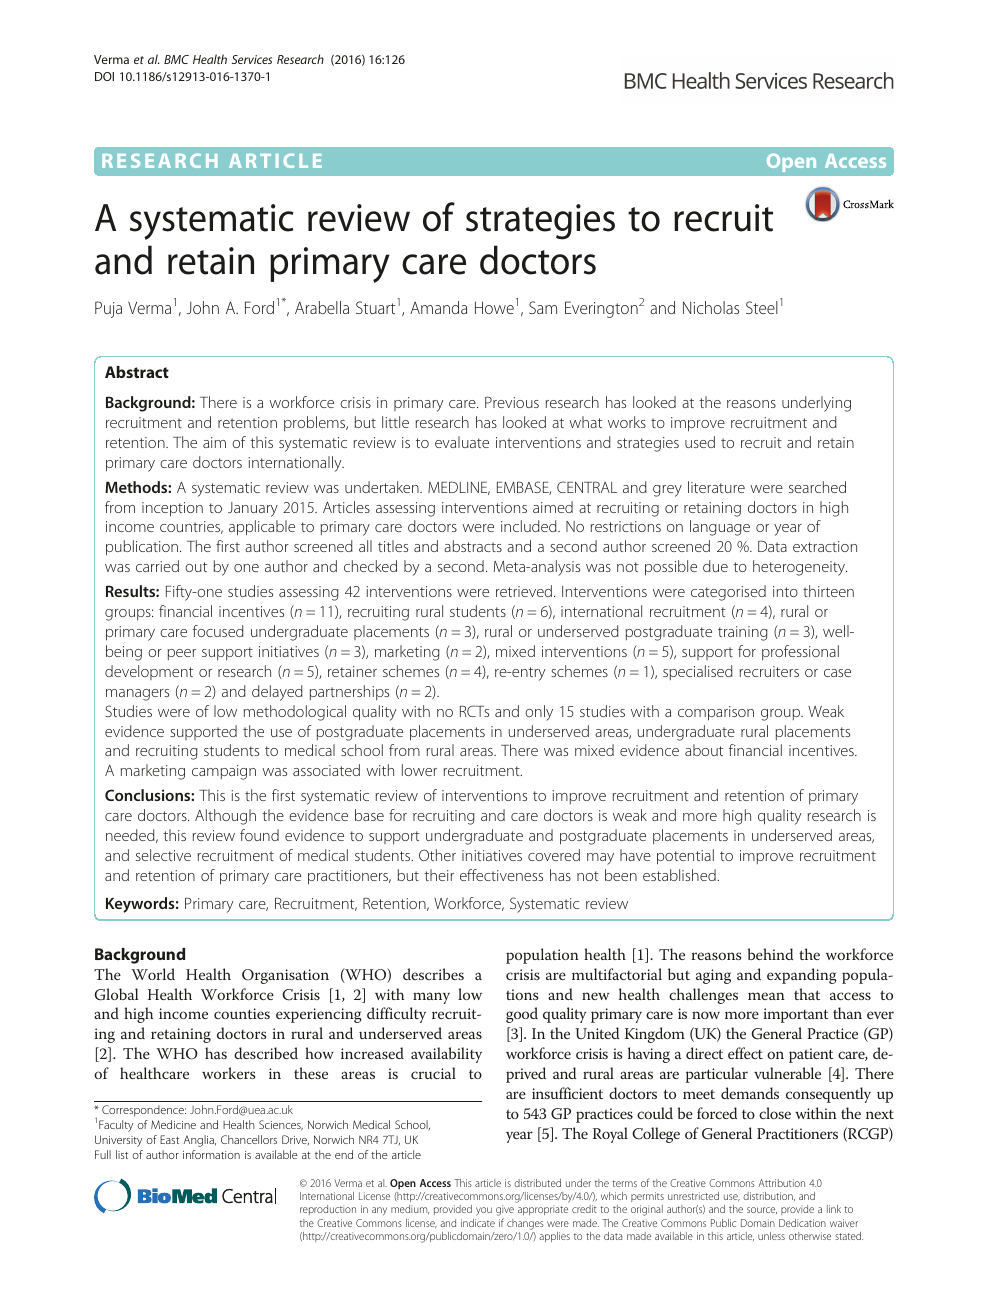 A systematic review of strategies to recruit and retain